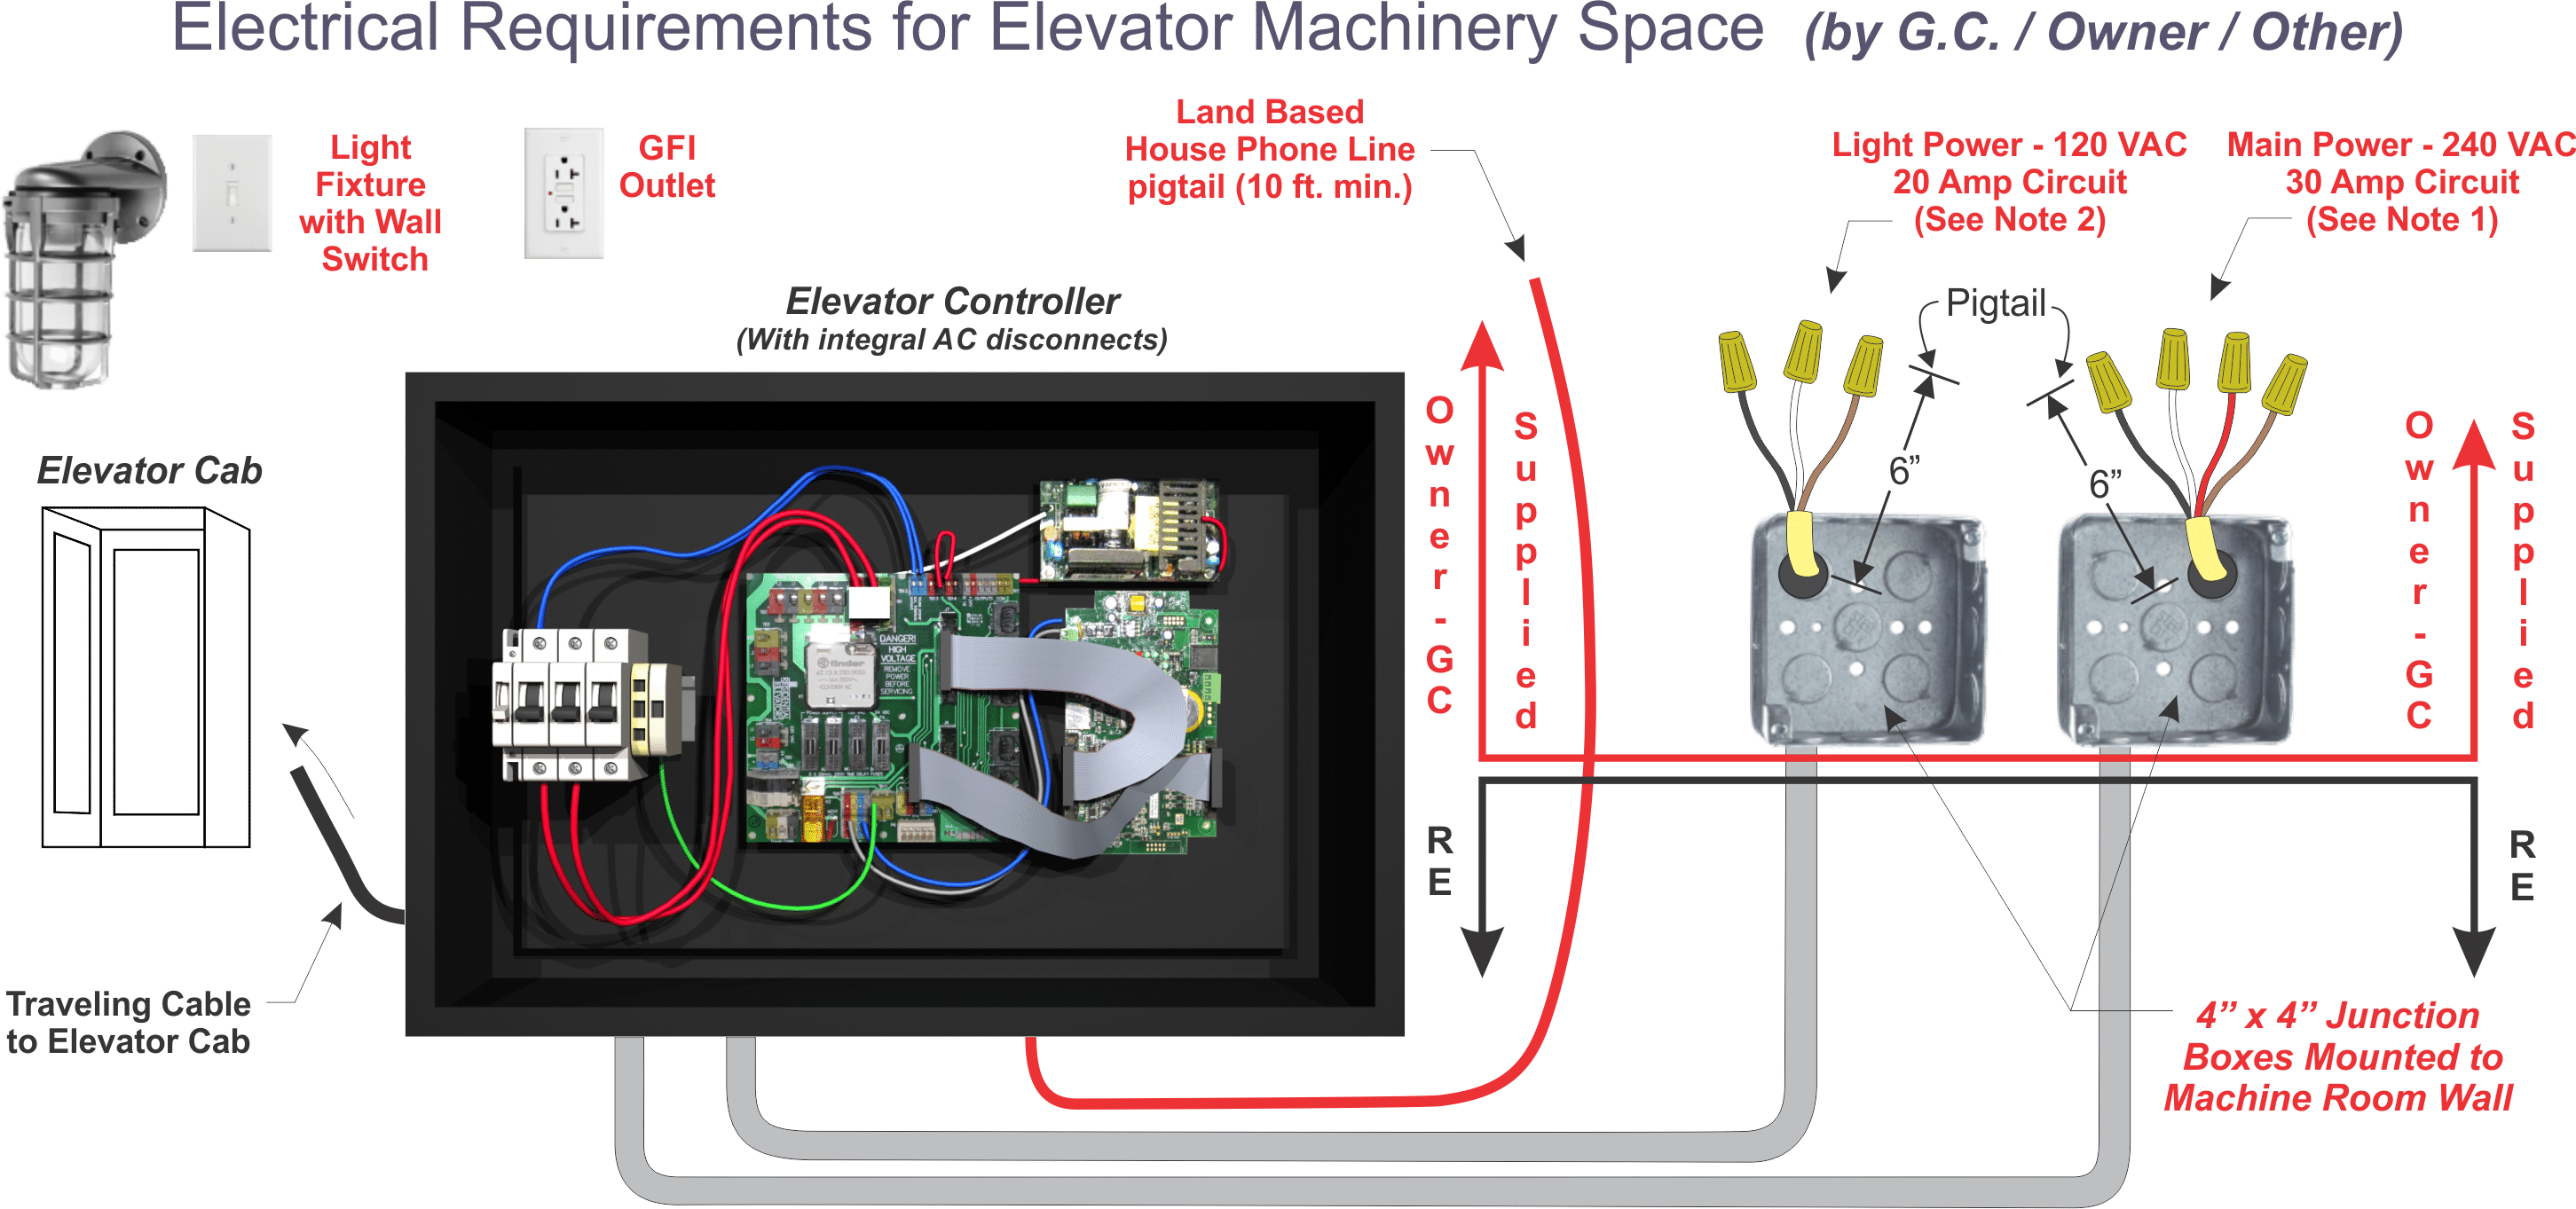 Electrical Wiring 240v Ac Library Control Circuit Schematic Diagram Of Twovalue Capacitor Requirements